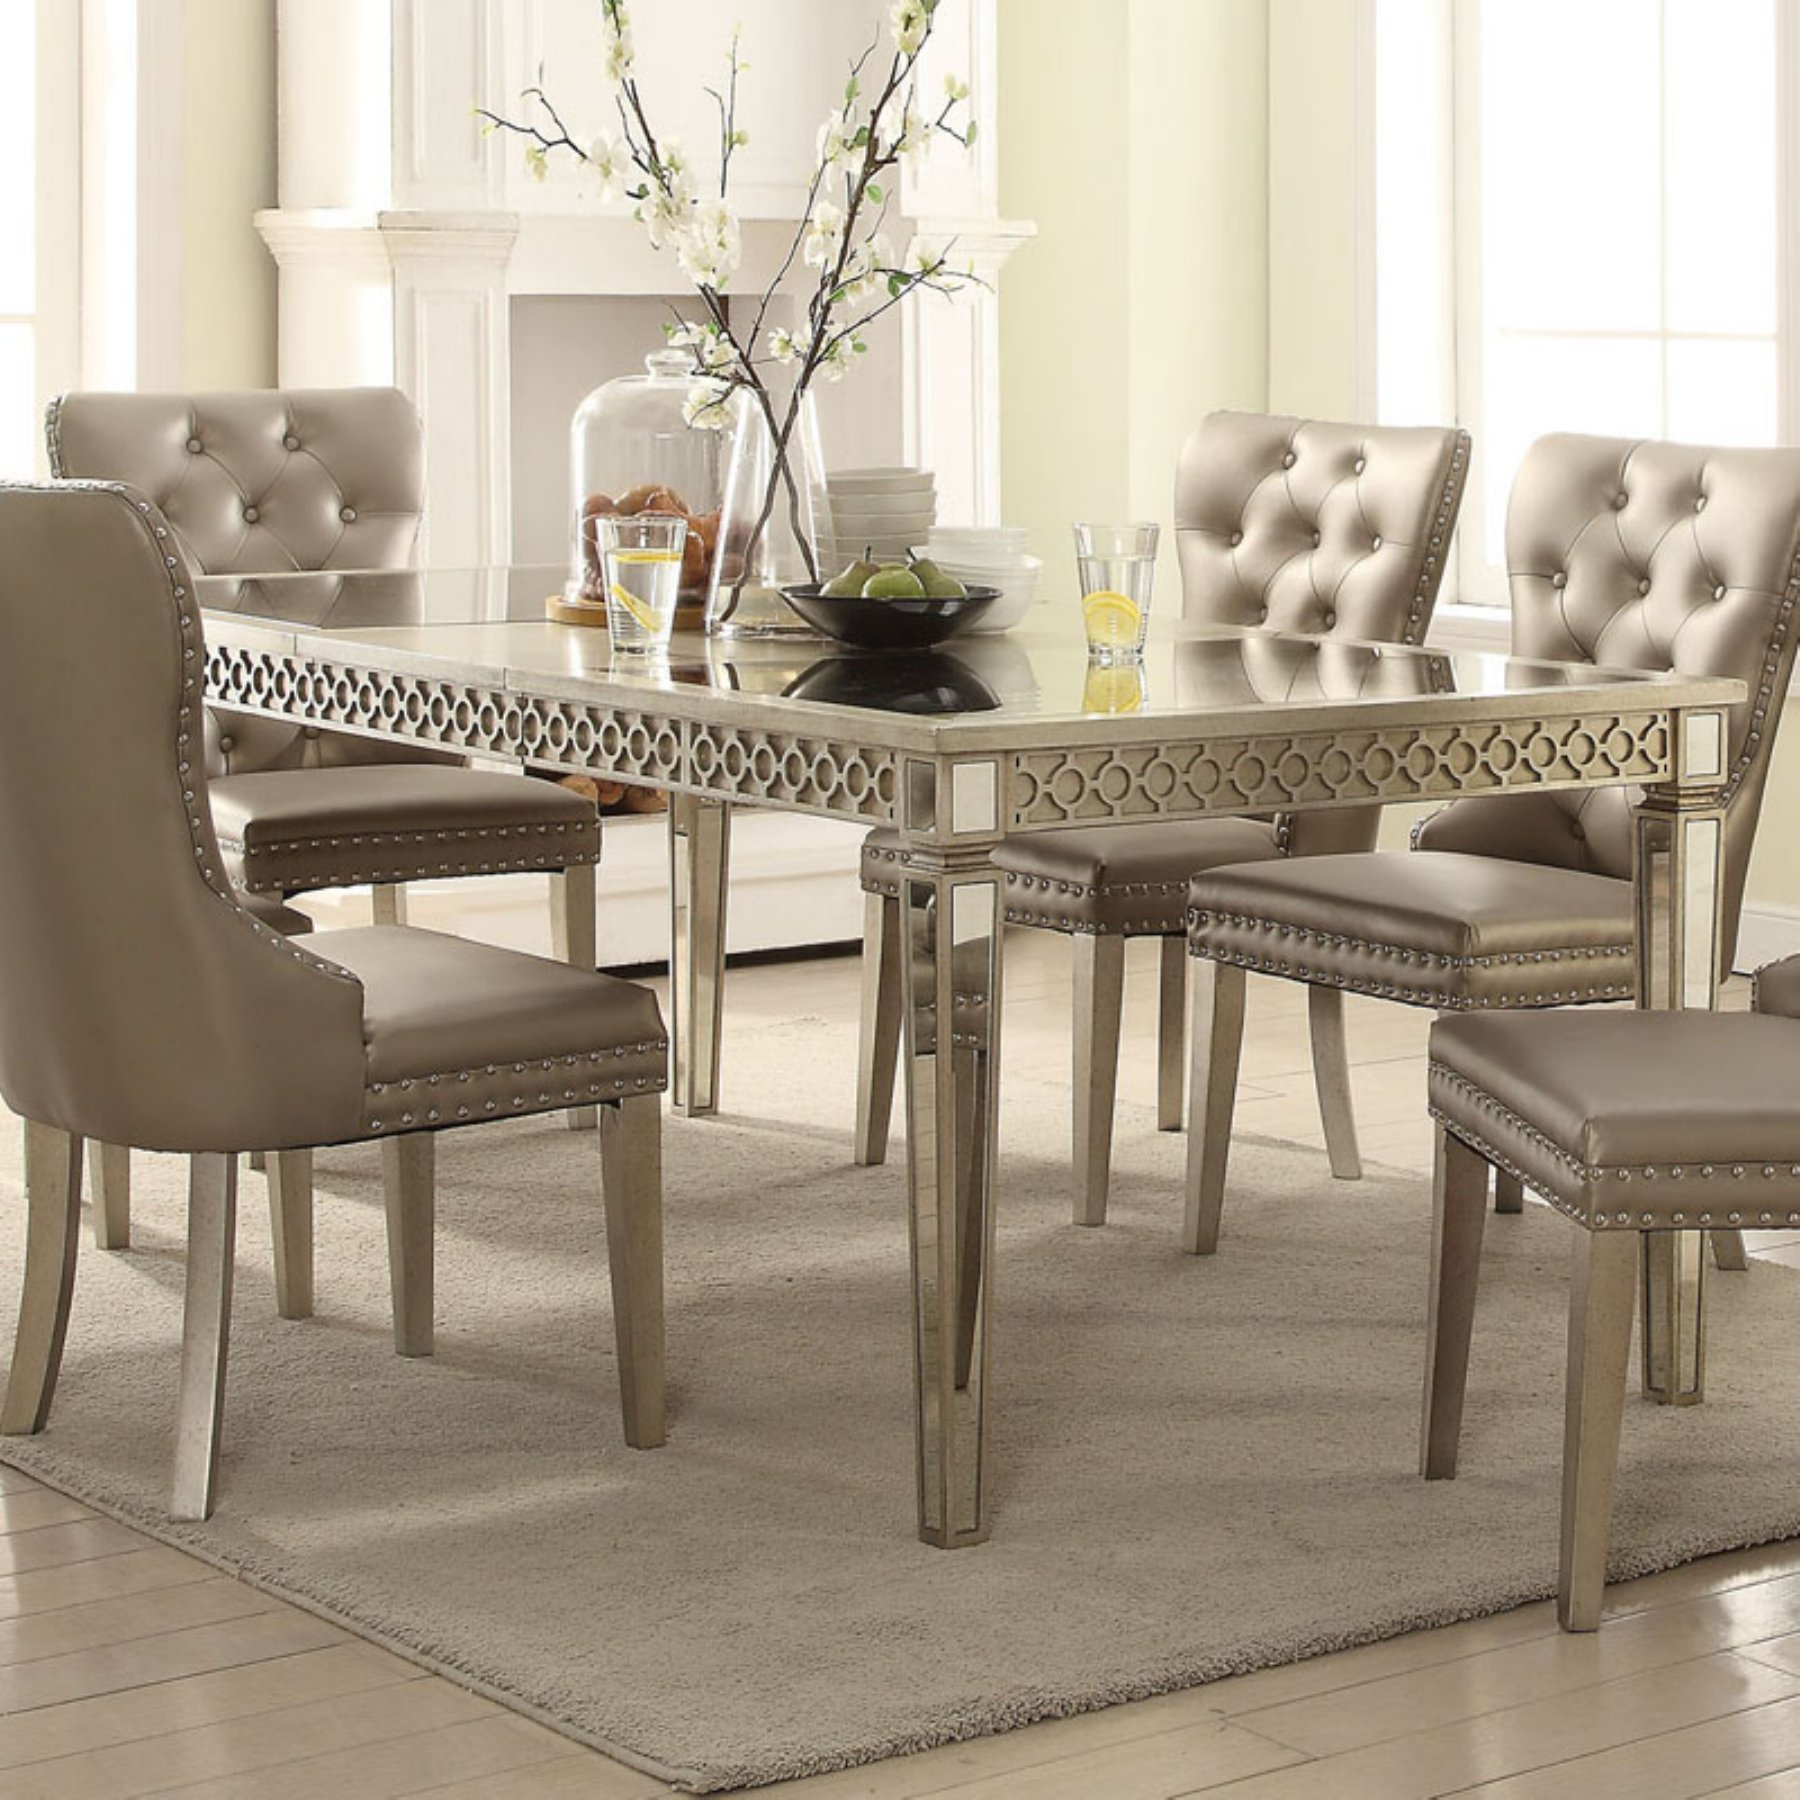 Acme Furniture Kacela Extension Dining Table | Kitchen In 2019 In Best And Newest Lamotte 5 Piece Dining Sets (Image 2 of 20)